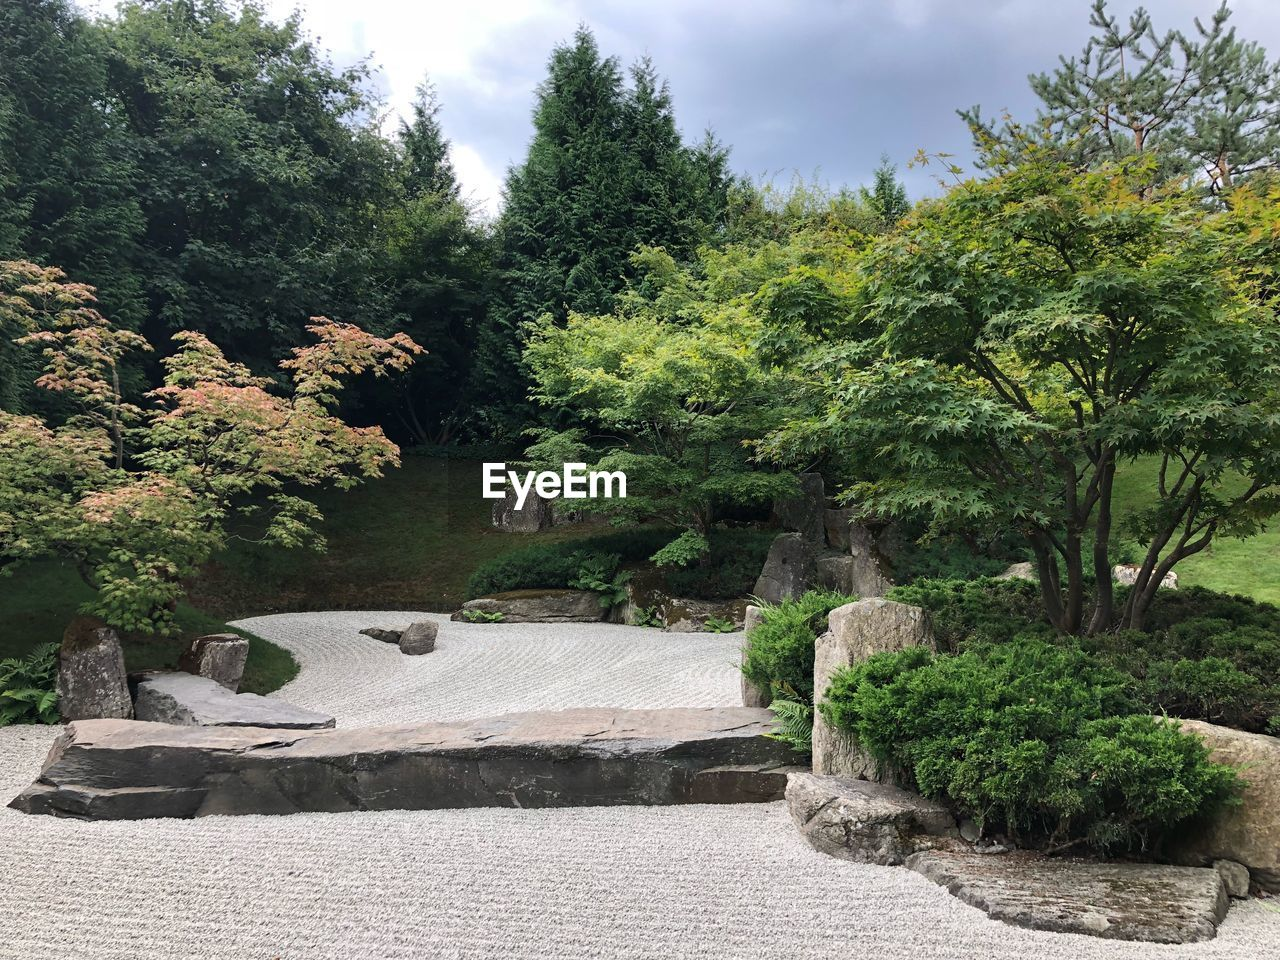 plant, tree, nature, beauty in nature, growth, no people, green color, sky, tranquility, day, tranquil scene, garden, scenics - nature, park, sunlight, outdoors, water, rock, solid, park - man made space